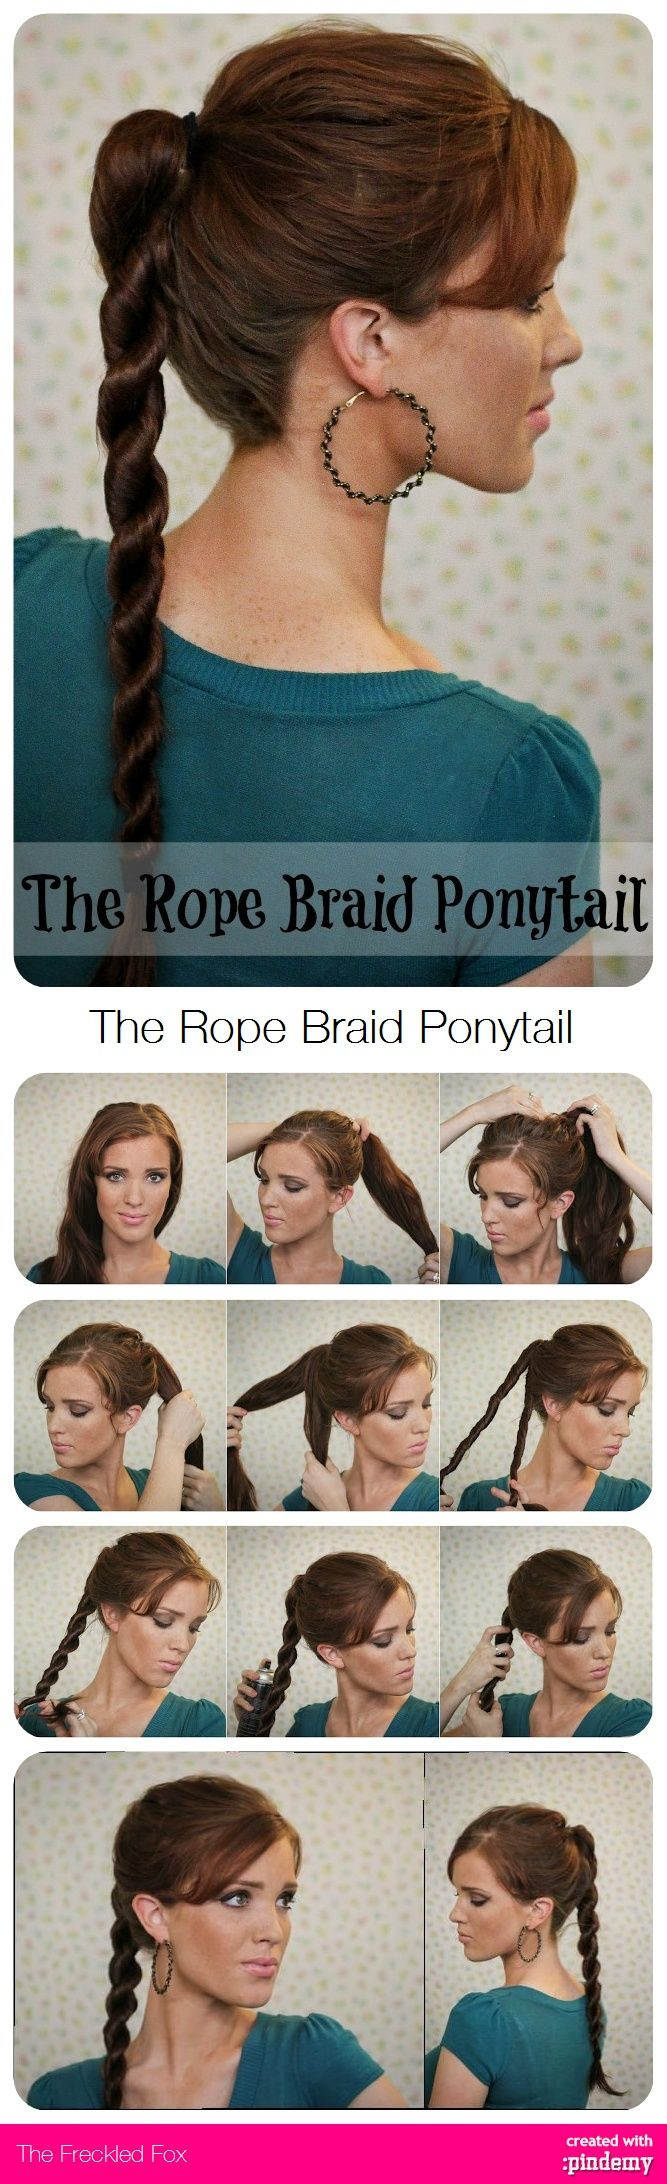 DIY The Rope Braid Ponytail Tutorial via pindemy